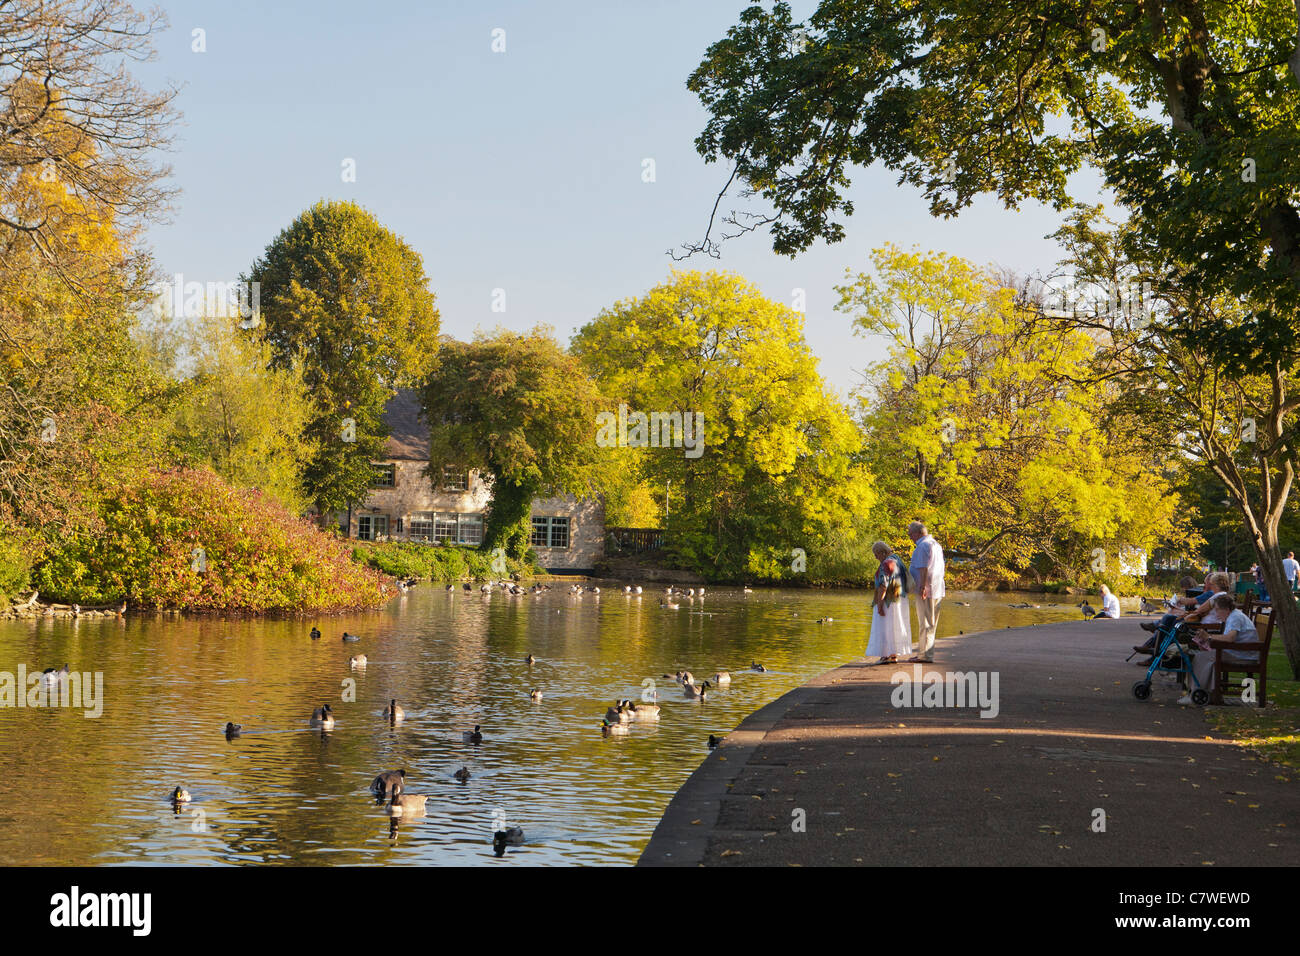 The River Wye, Bakewell, Peak District, Derbyshire, England UK - Stock Image